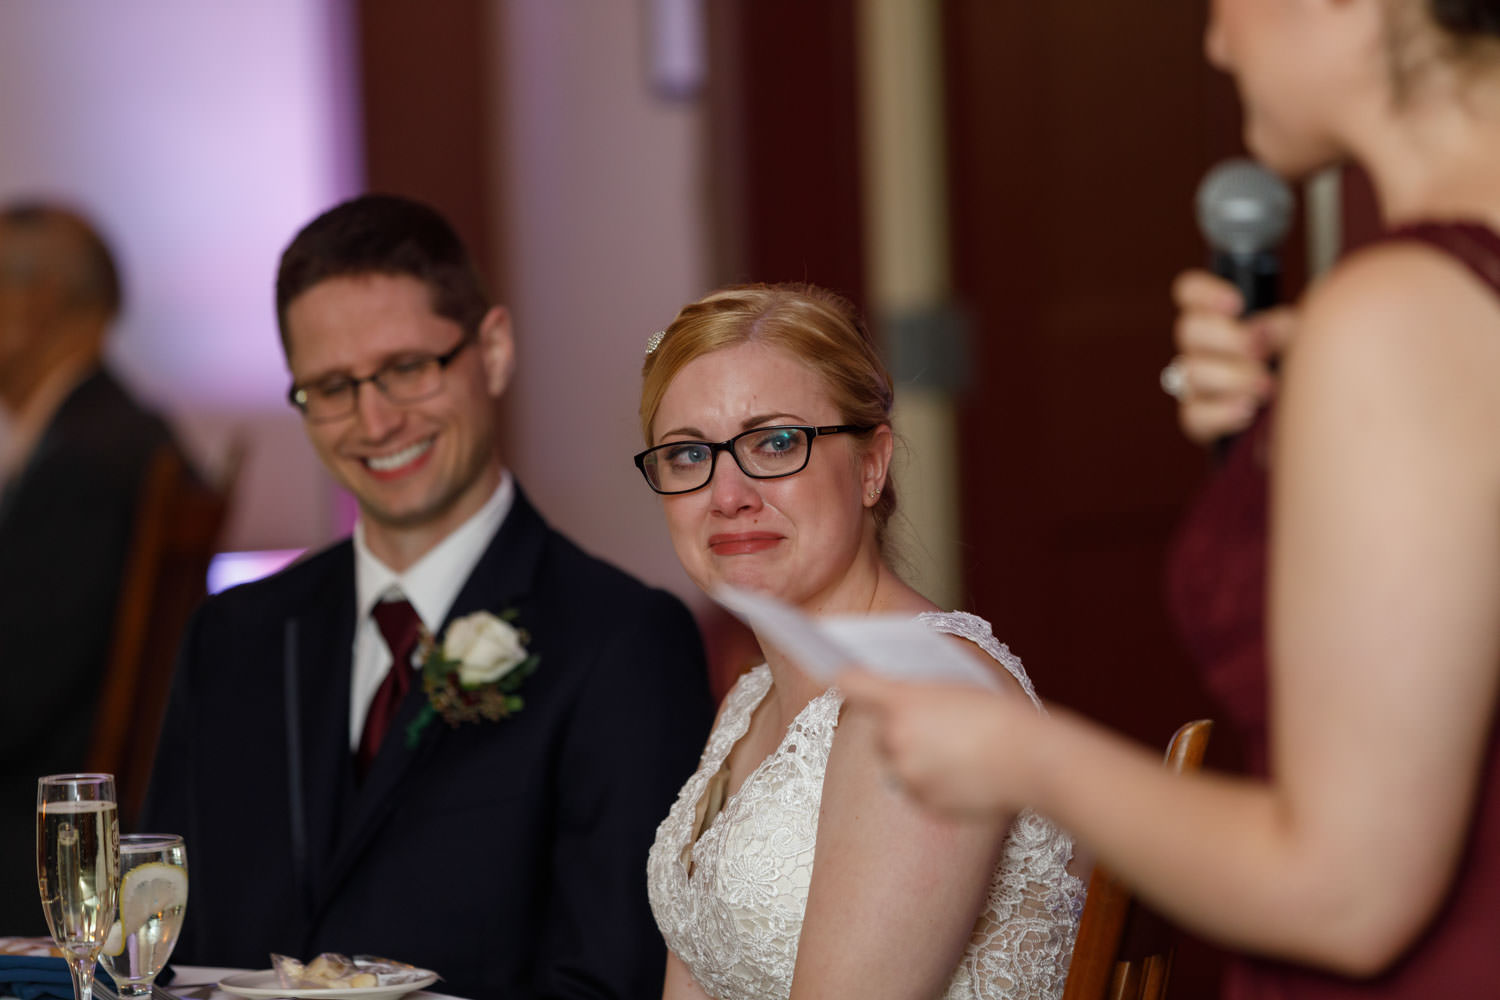 Bride tearing up during maid of honor speech during reception with groom laughing in background